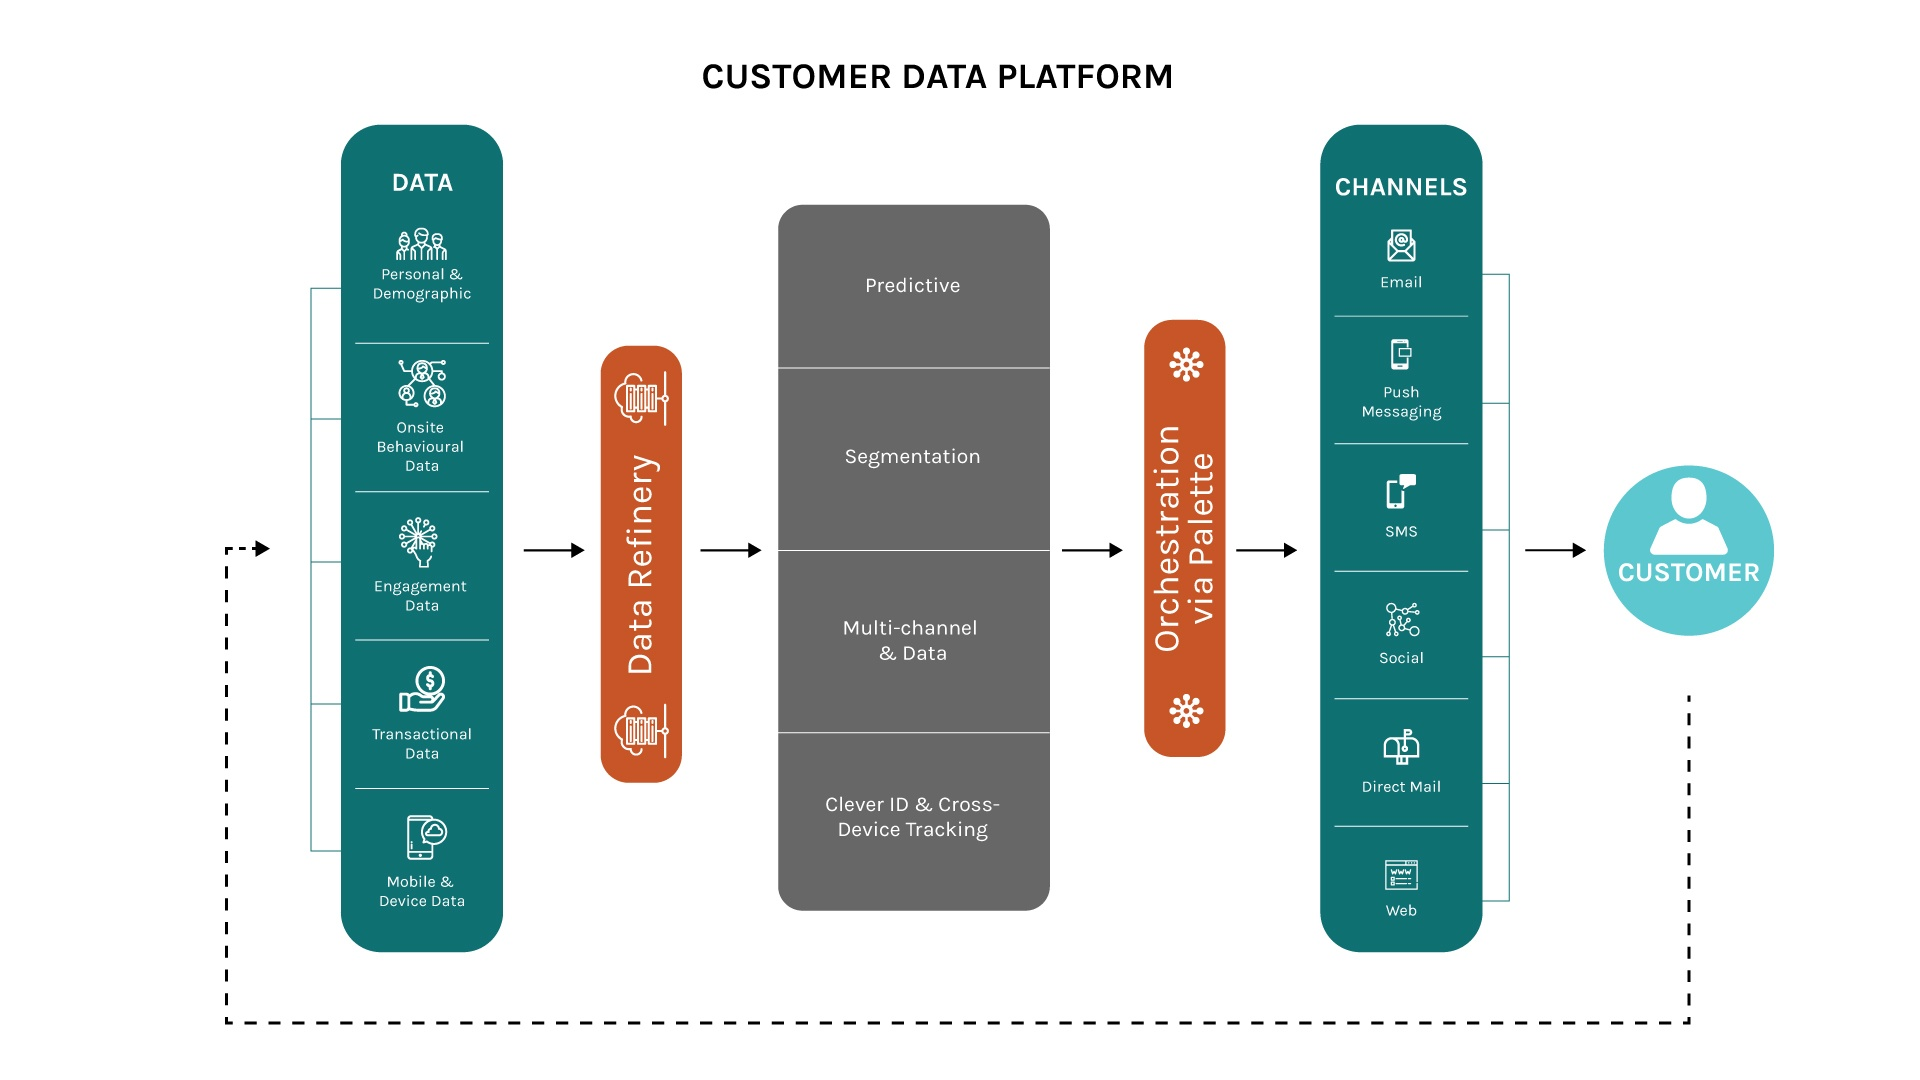 Customer Data Platform | CDP vs CRM